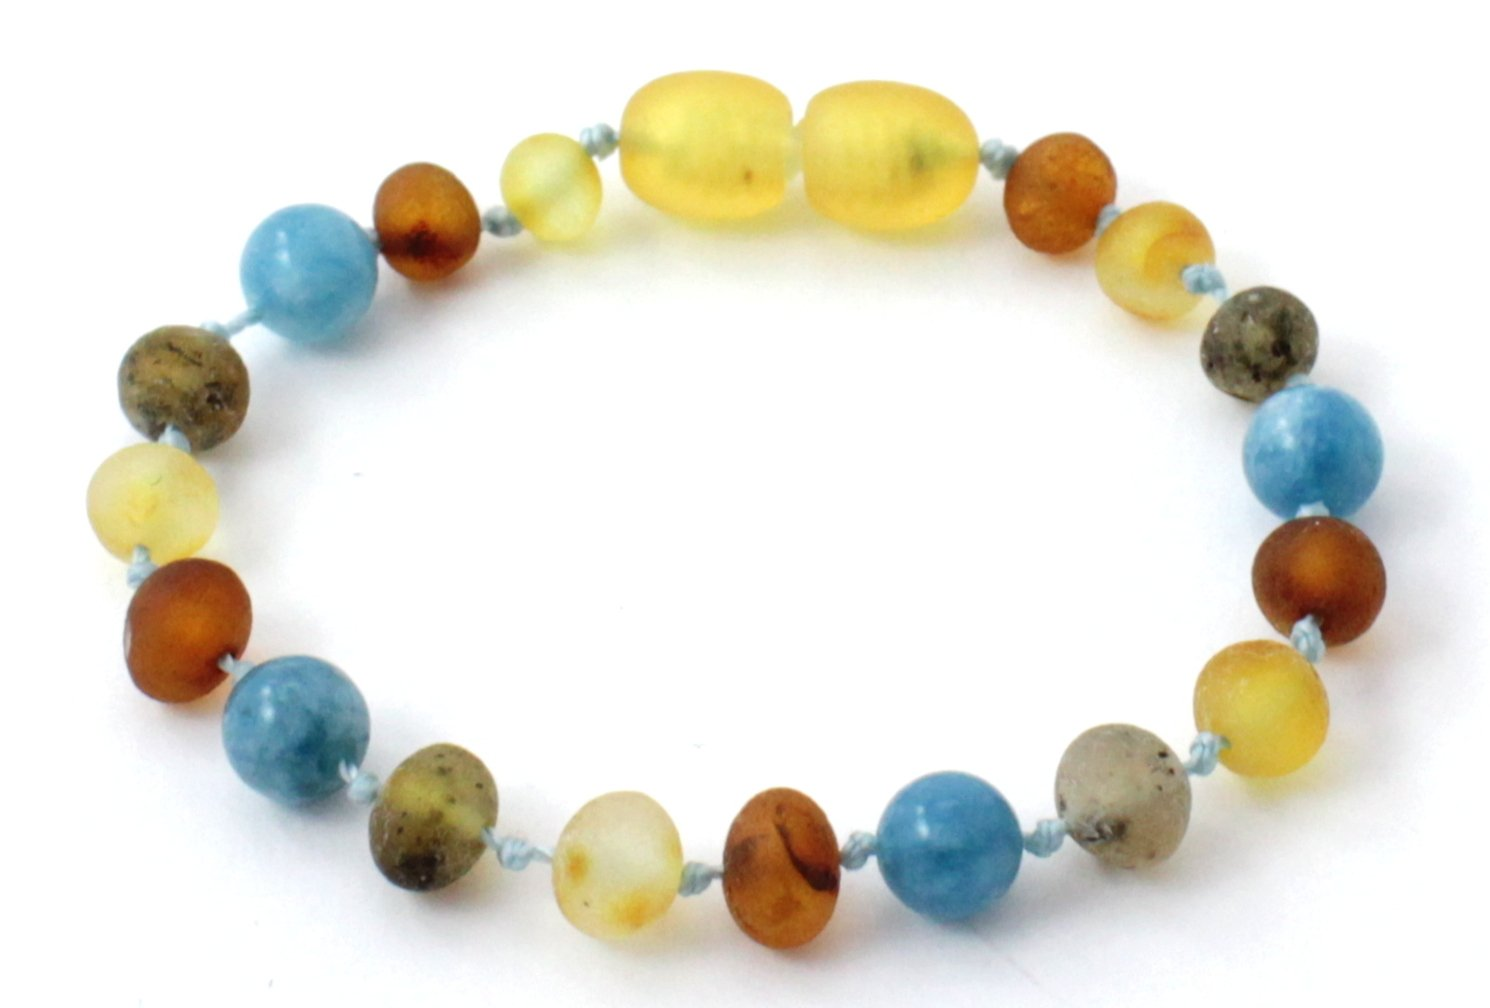 Raw Baltic Amber Teething Bracelet / Anklet made with Aquamarine Beads - Size 6.3 inches (16 cm) - Raw Multicolor Amber Beads - BoutiqueAmber (6.3 inches, Raw Multi / Aquamarine)